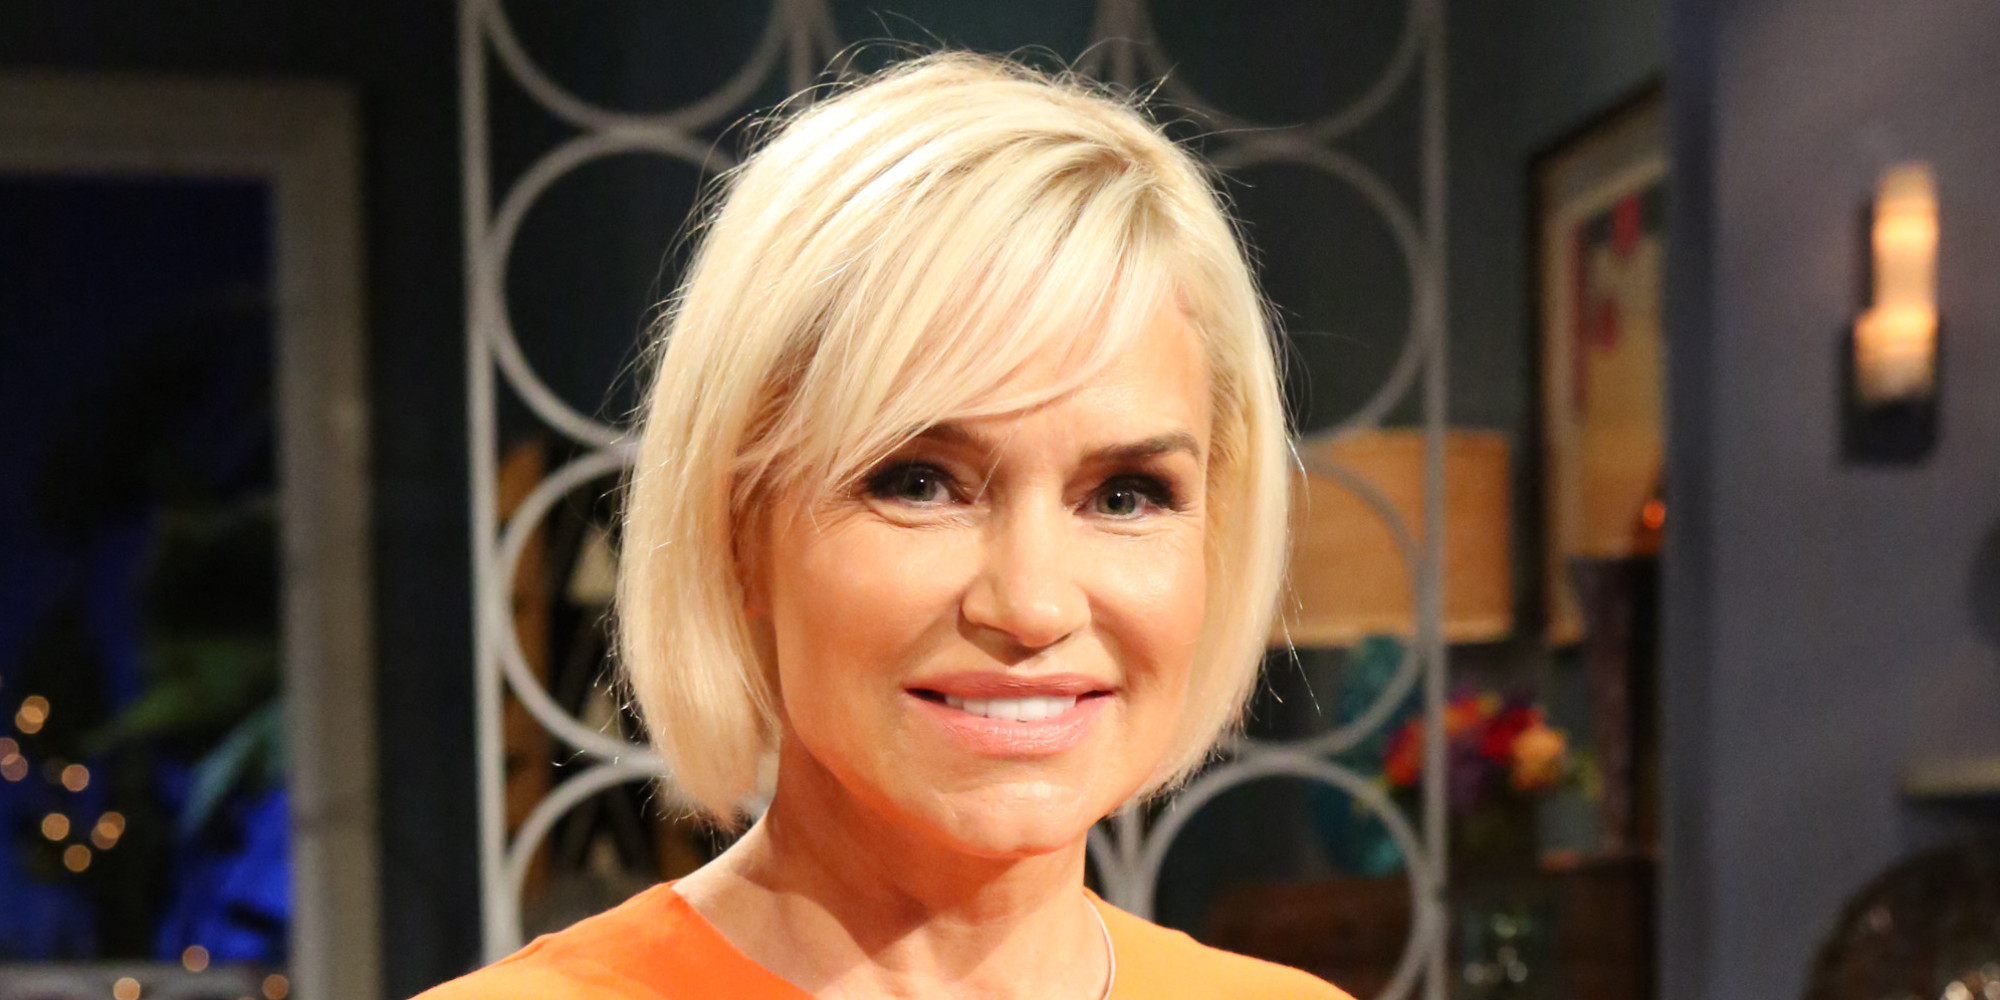 Yolanda Foster Blogs About Her Battle With Lyme Disease: 'I Have Lost ...